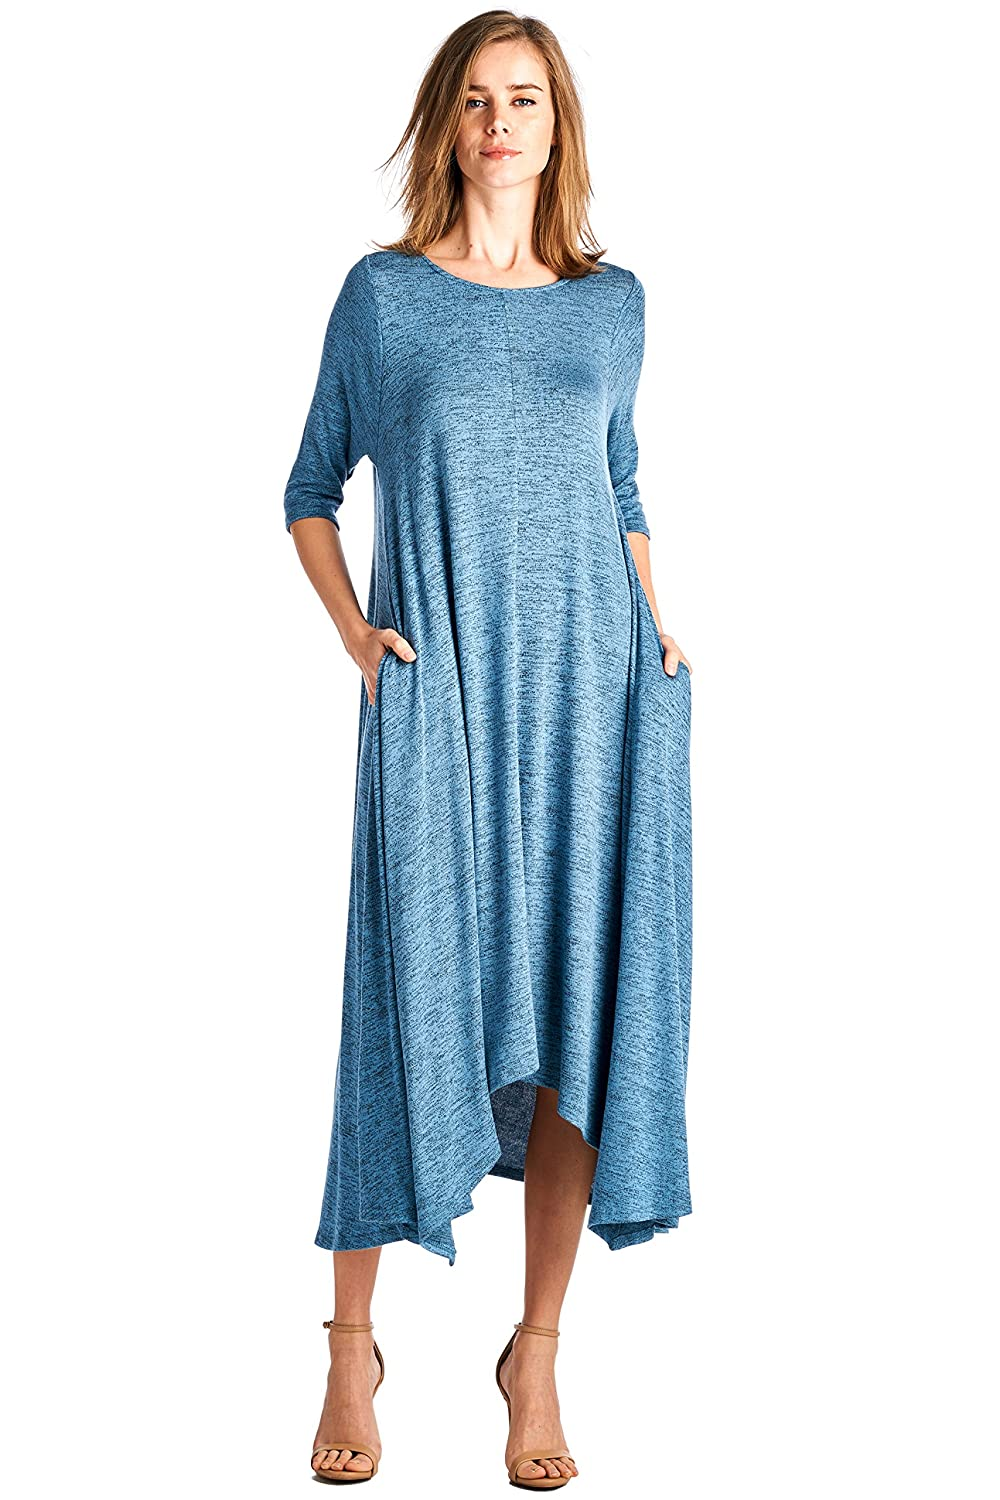 12 Ami Solid 3/4 Sleeve Pocket Loose Maxi Dress (S-3X) - Made in USA 2181D